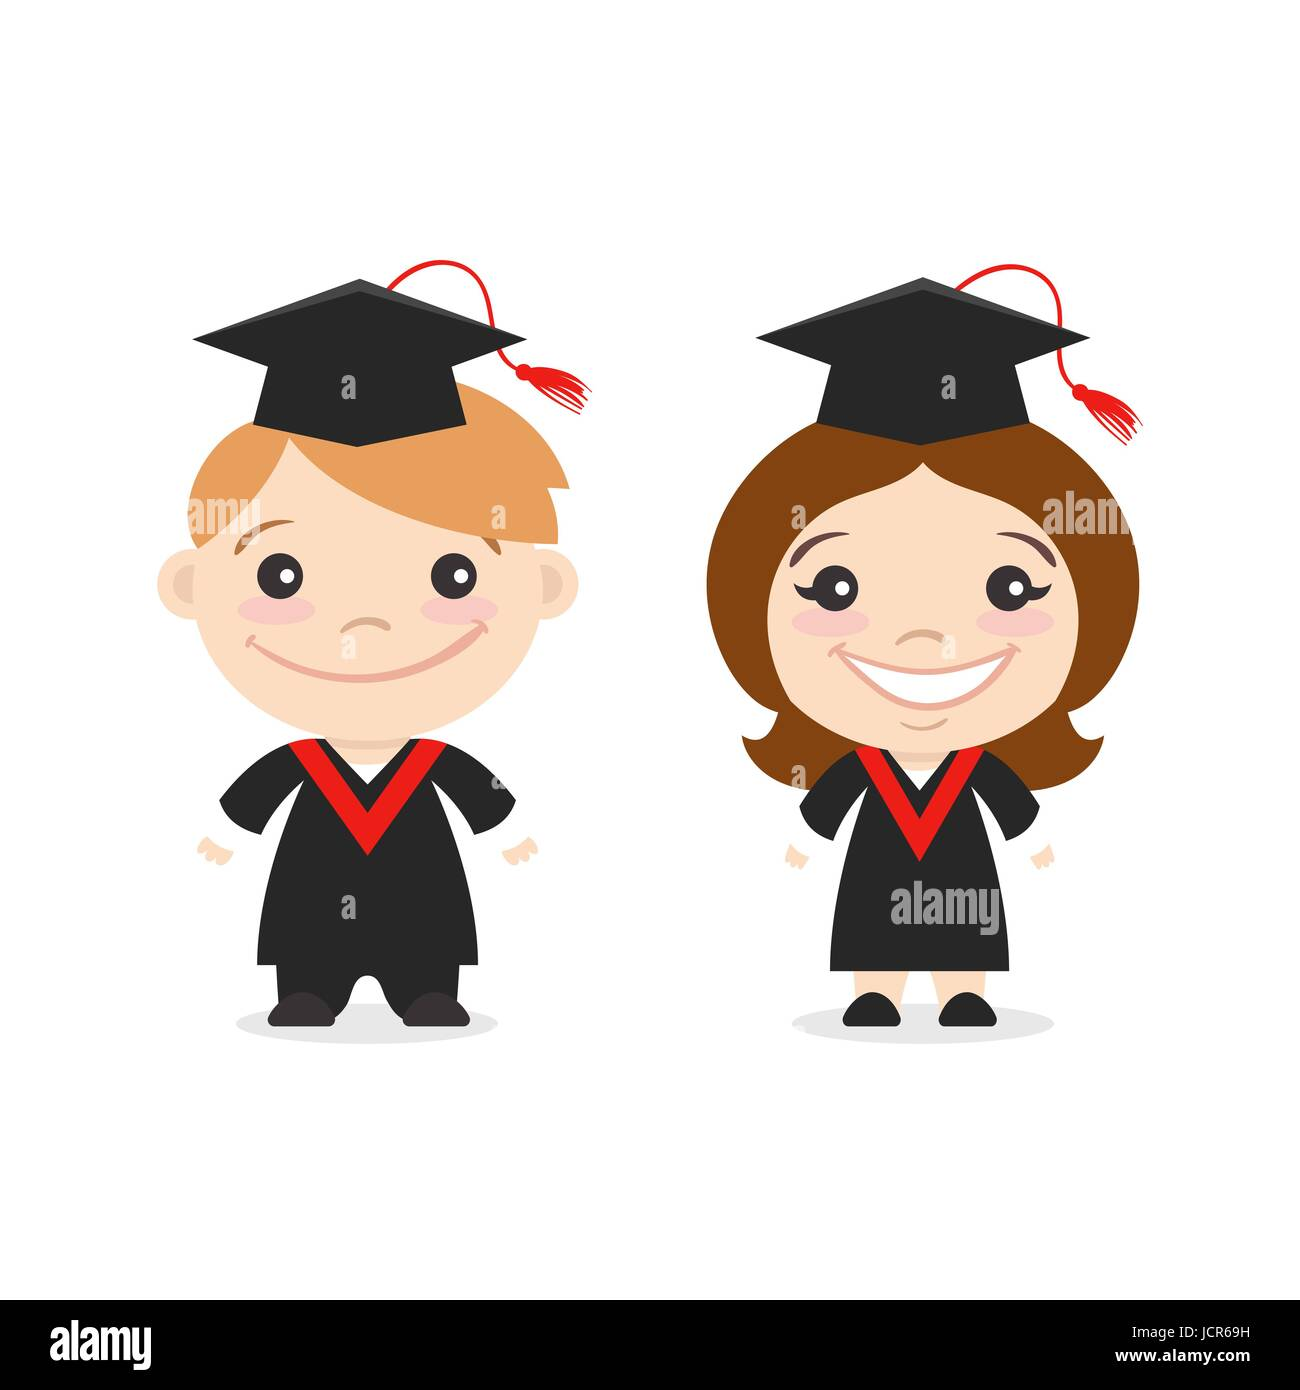 Vector illustration of two happy cute kids characters boy and girl in graduate costumes